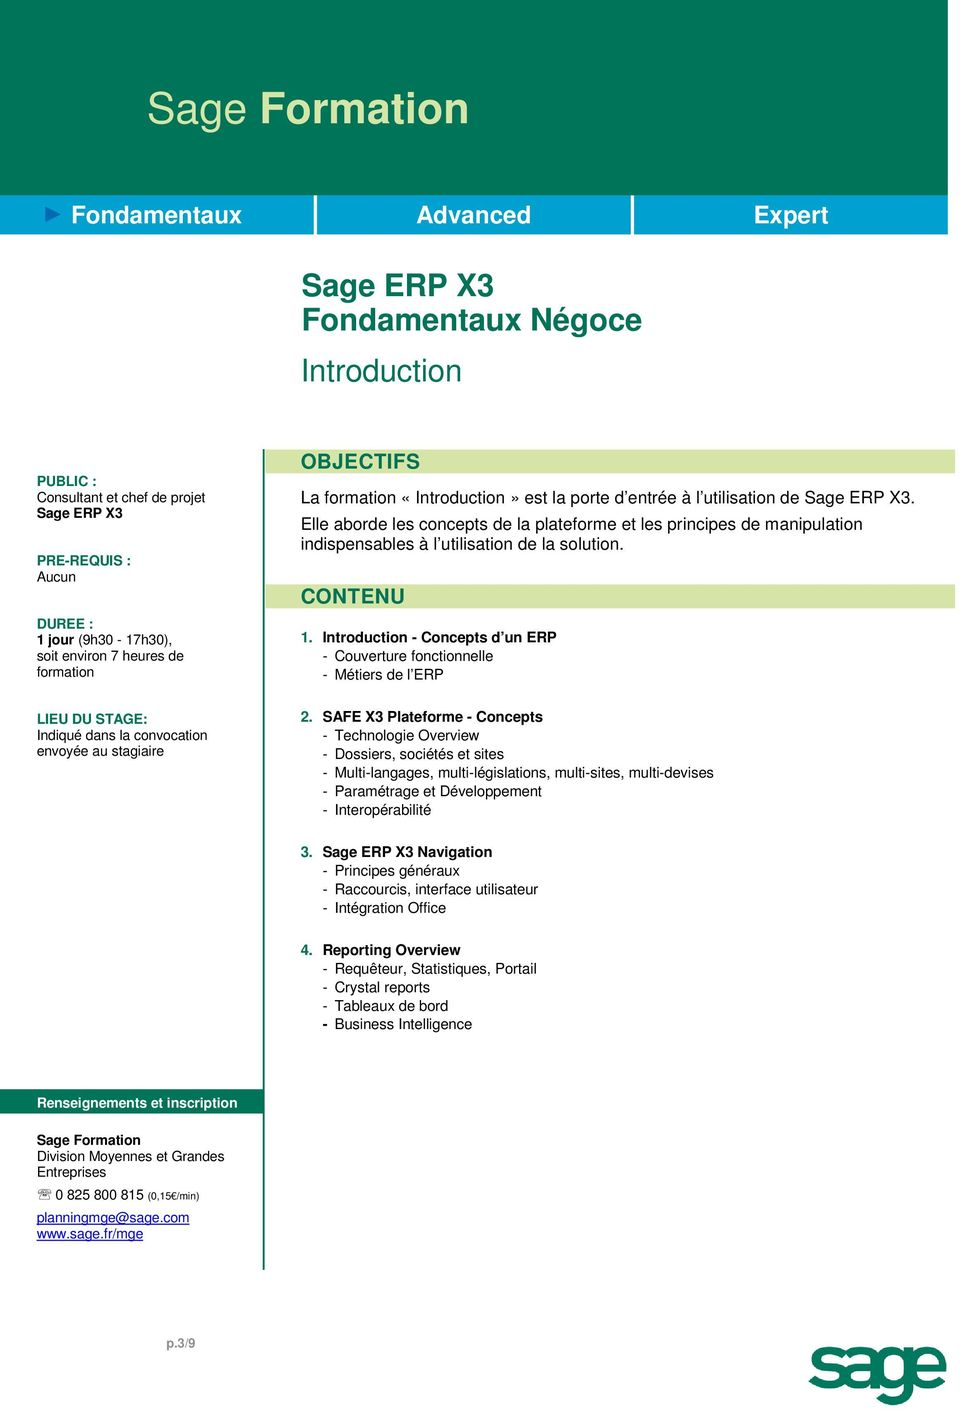 Introduction - Concepts d un ERP - Couverture fonctionnelle - Métiers de l ERP 2.